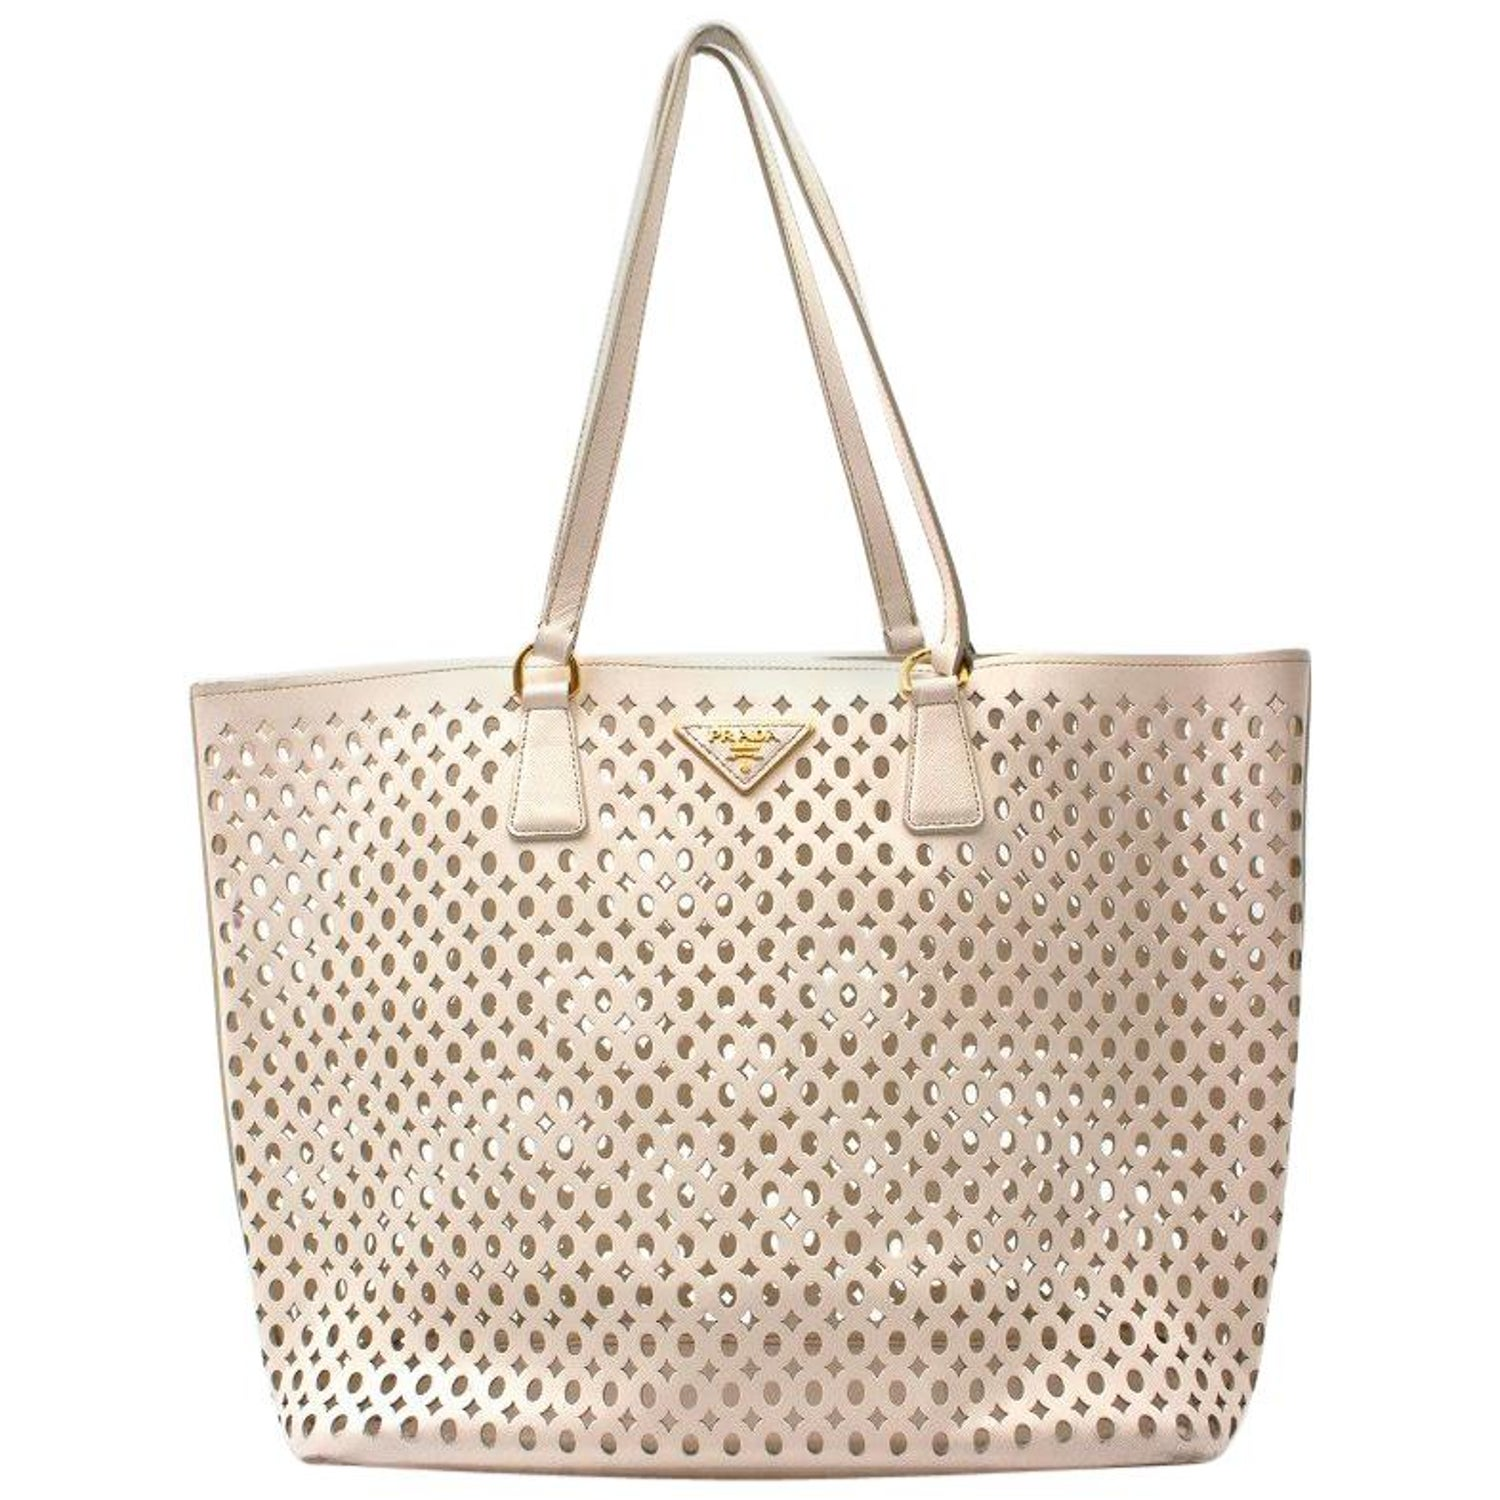 62eccadc9490 Prada White Laser Cut-out Shoulder Tote at 1stdibs